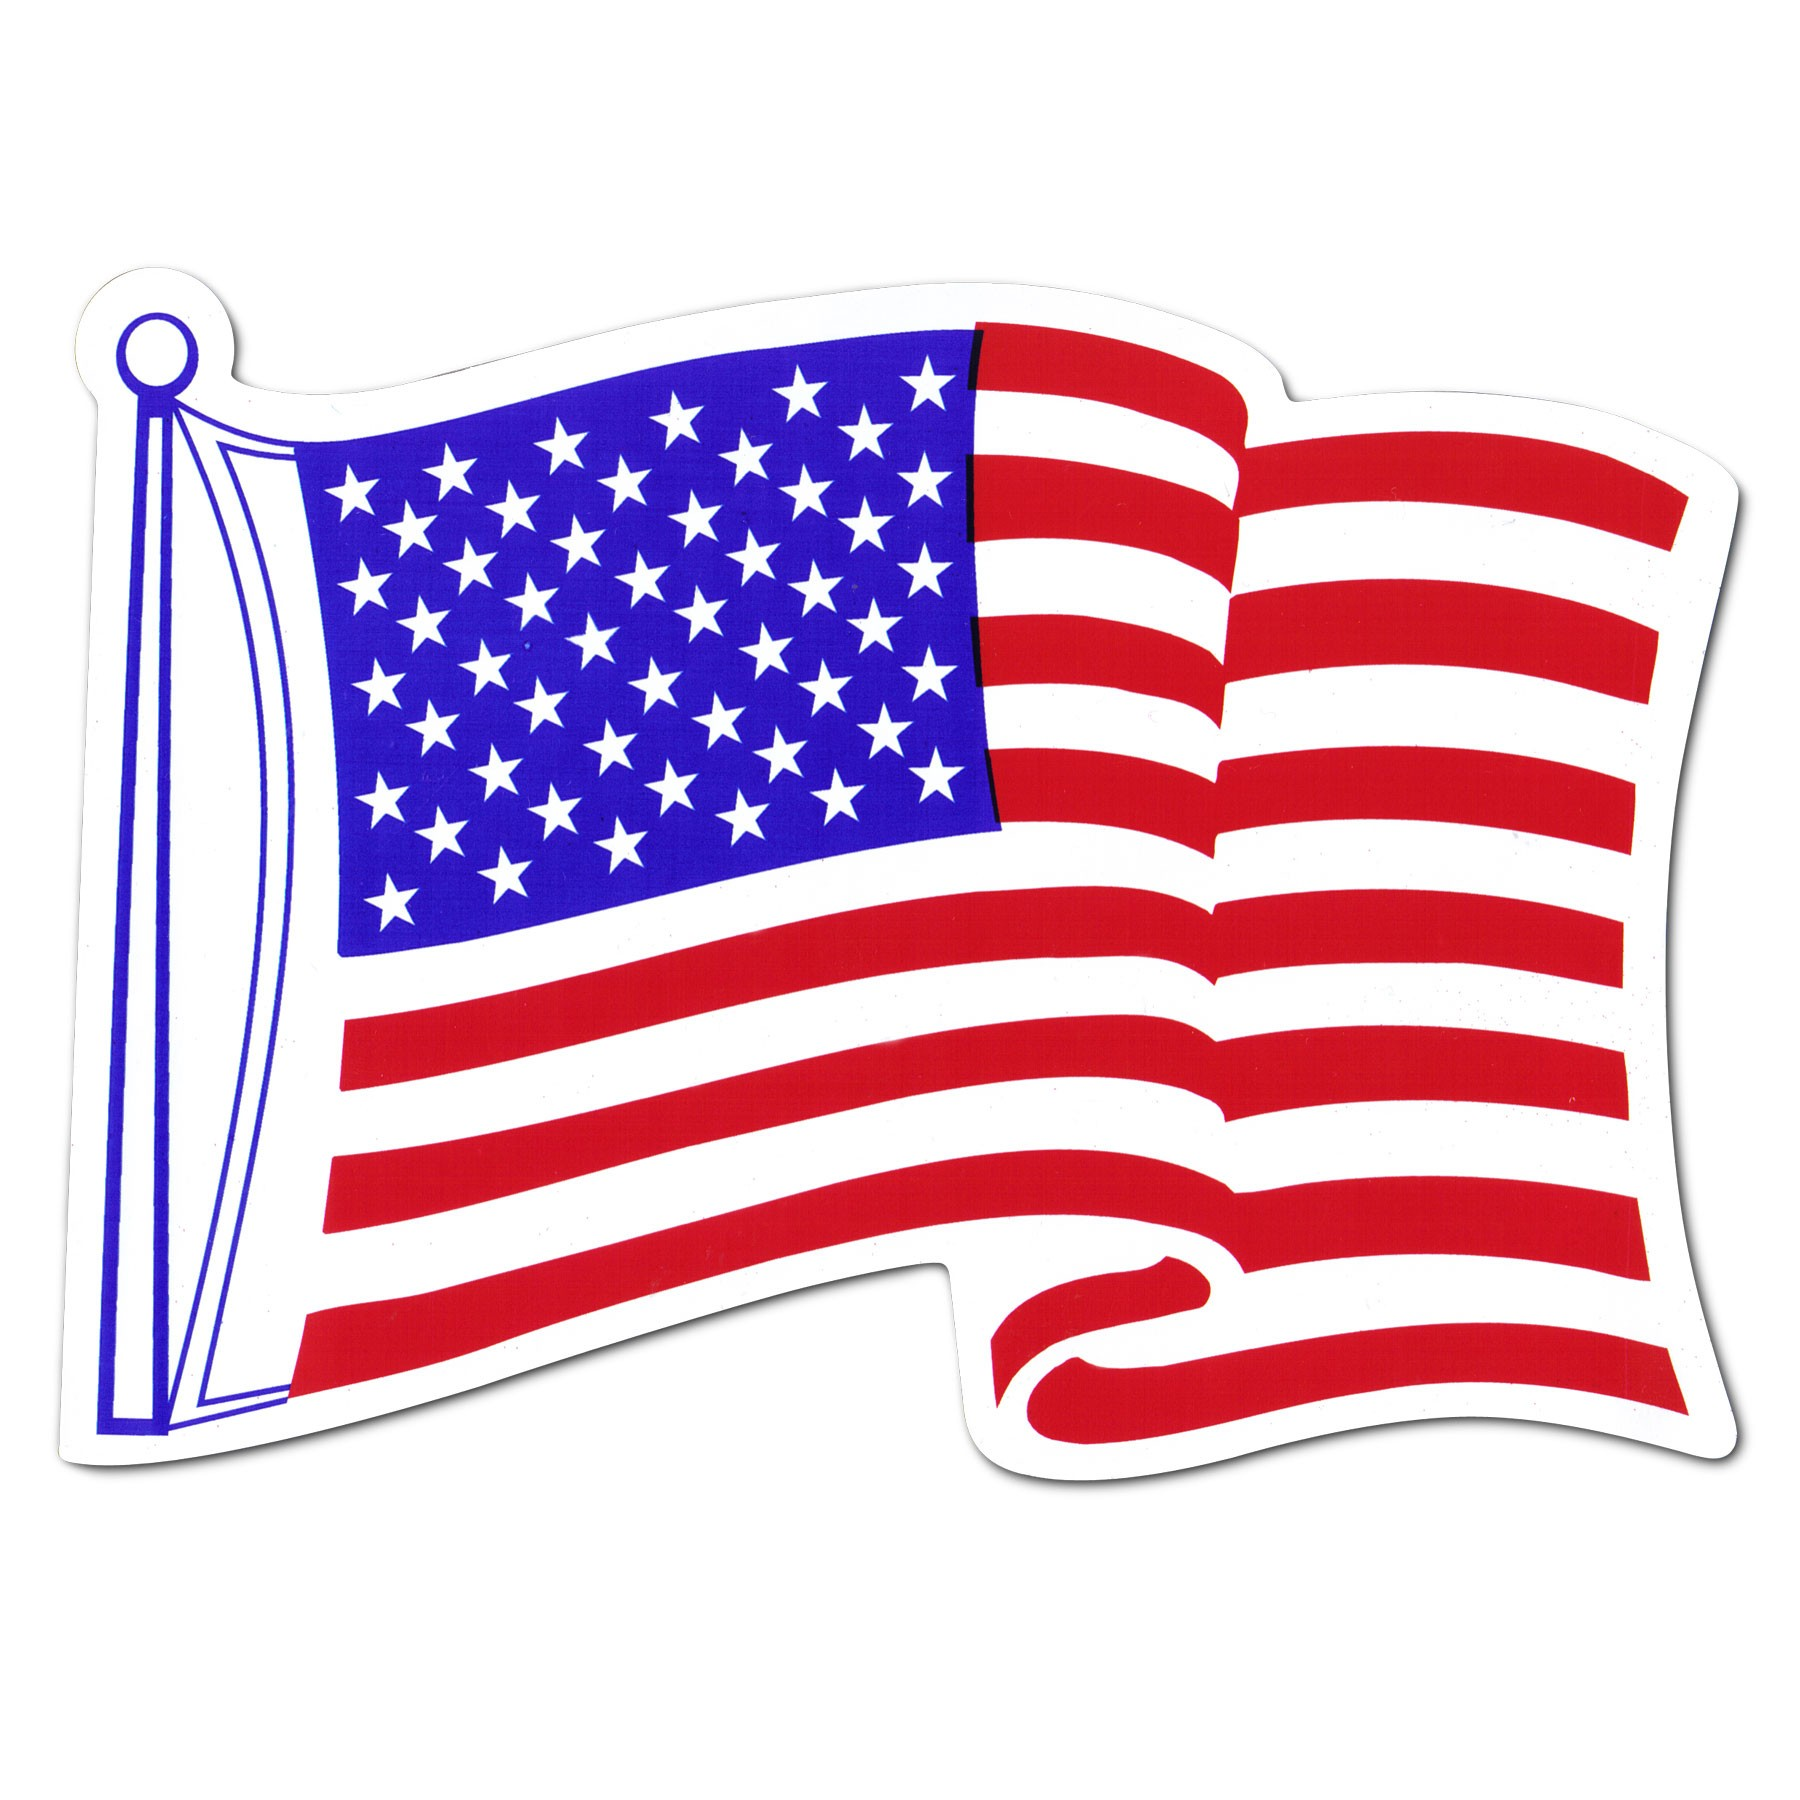 American Flag Clipart & American Flag Clip Art Images.